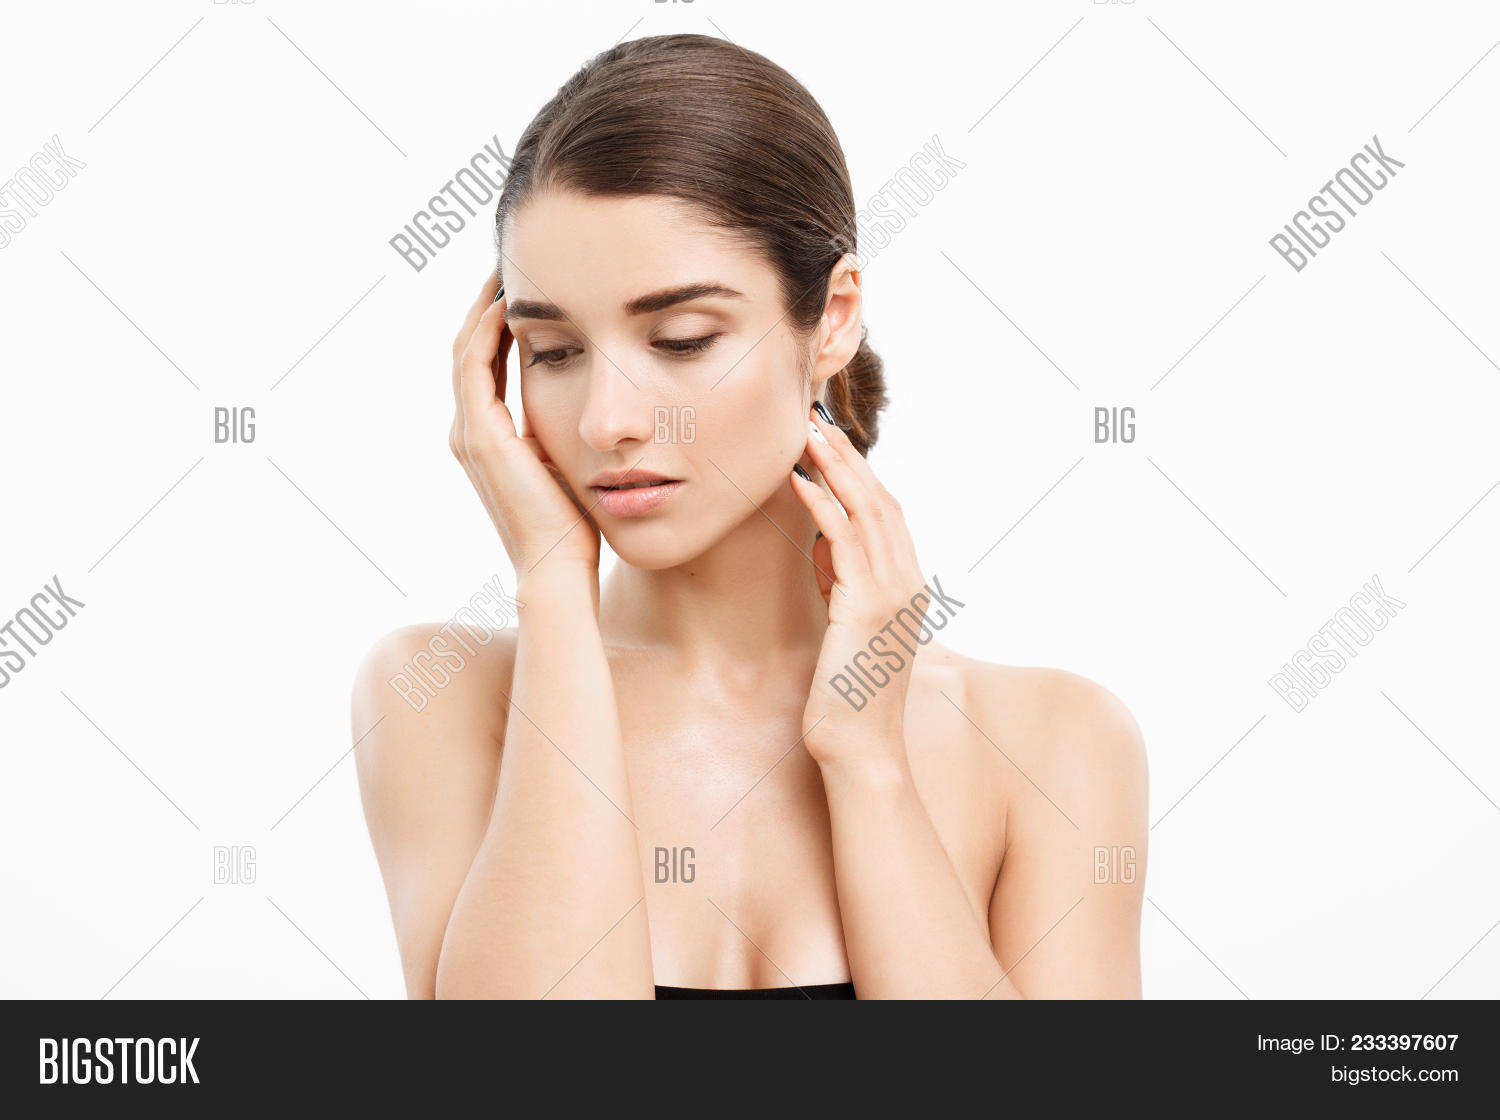 Beauty Skin Care Concept - Beautiful Caucasian Woman Face Portrait. Beautiful beauty young female model girl touching her face skin cheeks hands fingers. Fashion Beauty Model isolated on white.